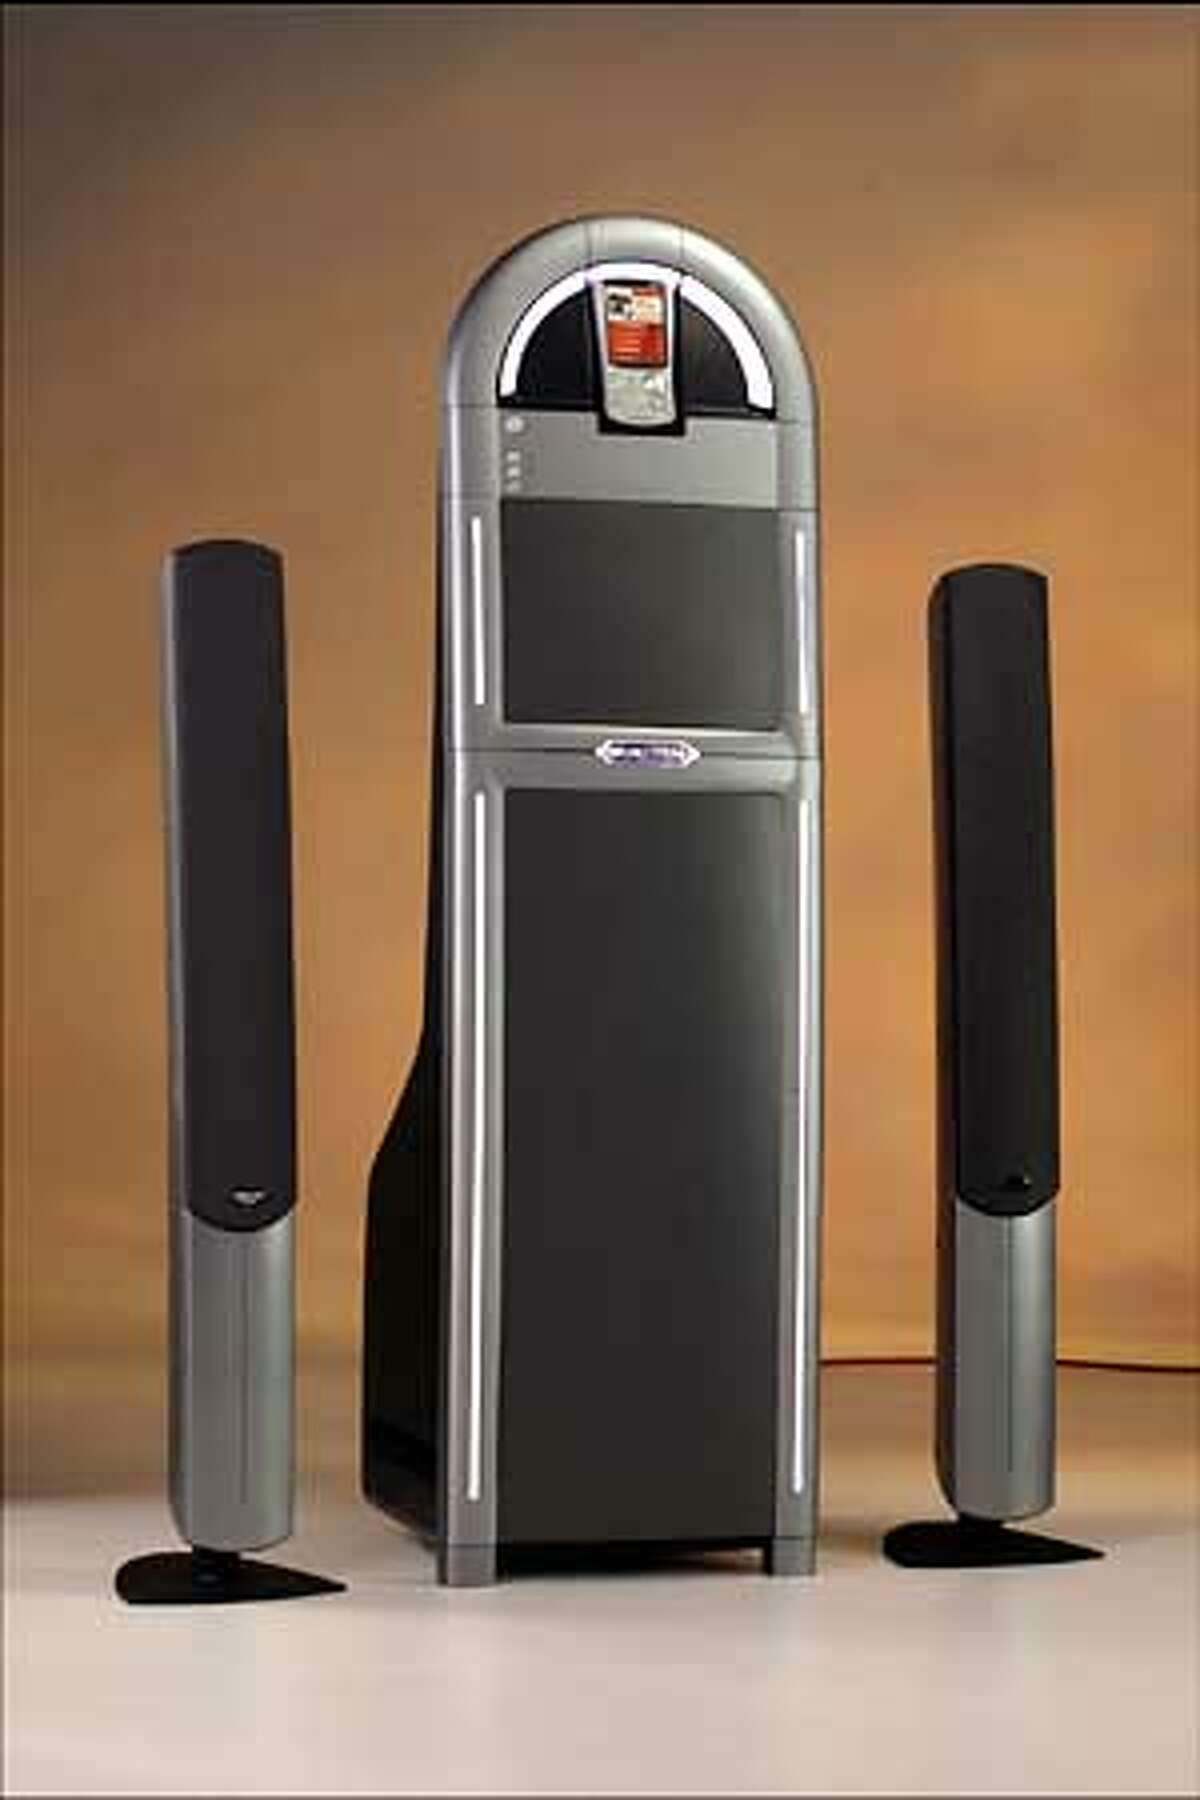 for MUISC15; Wurlitzer Jukebox This is Gibson Audio's new internet connected music player, which ties into the Gibson music store being set up using software from Loudeye and Microsoft. , / HO